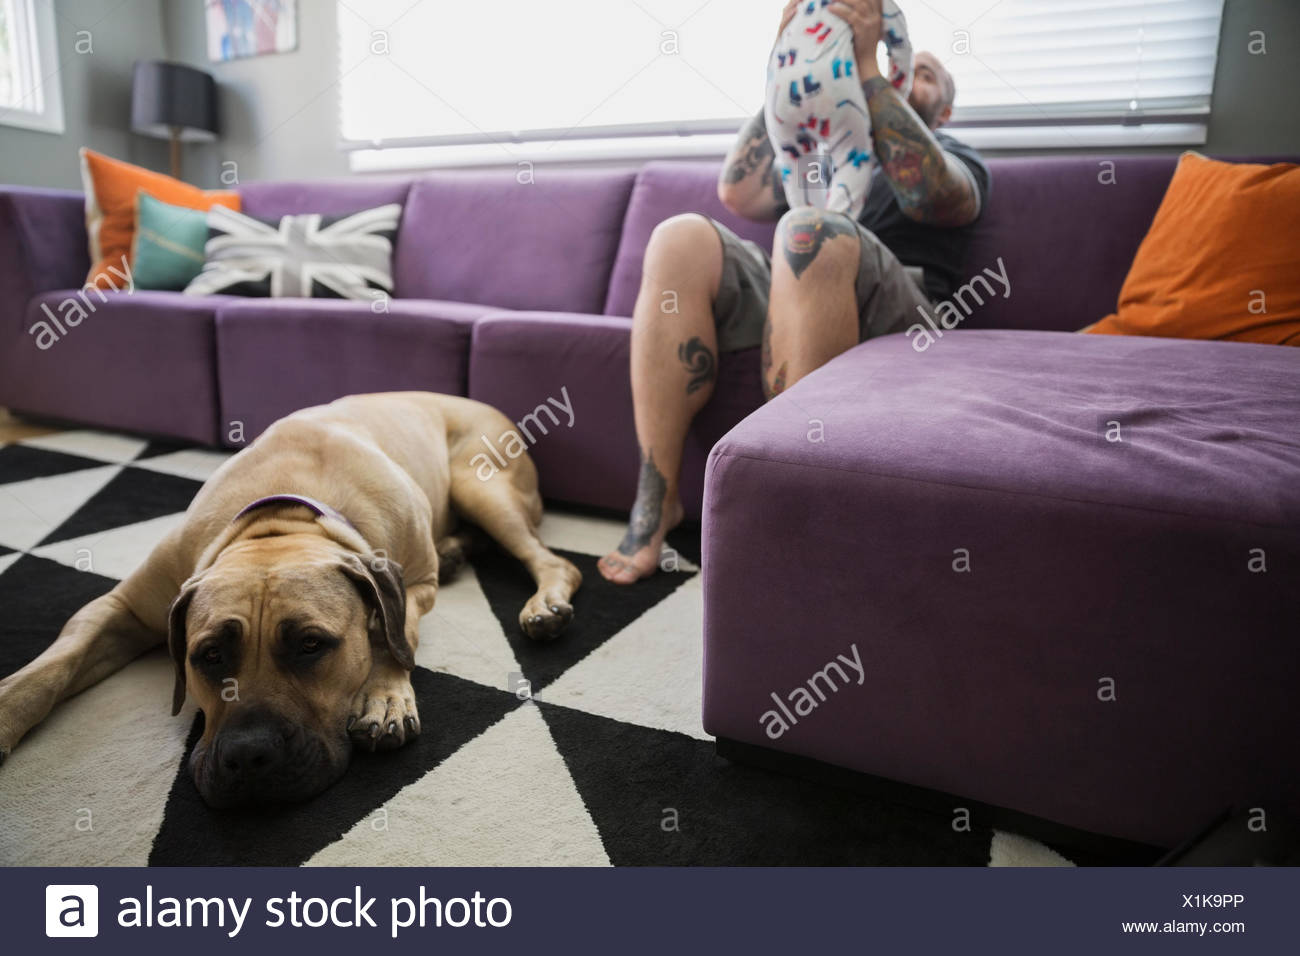 Dog laying below father and baby son sofa - Stock Image